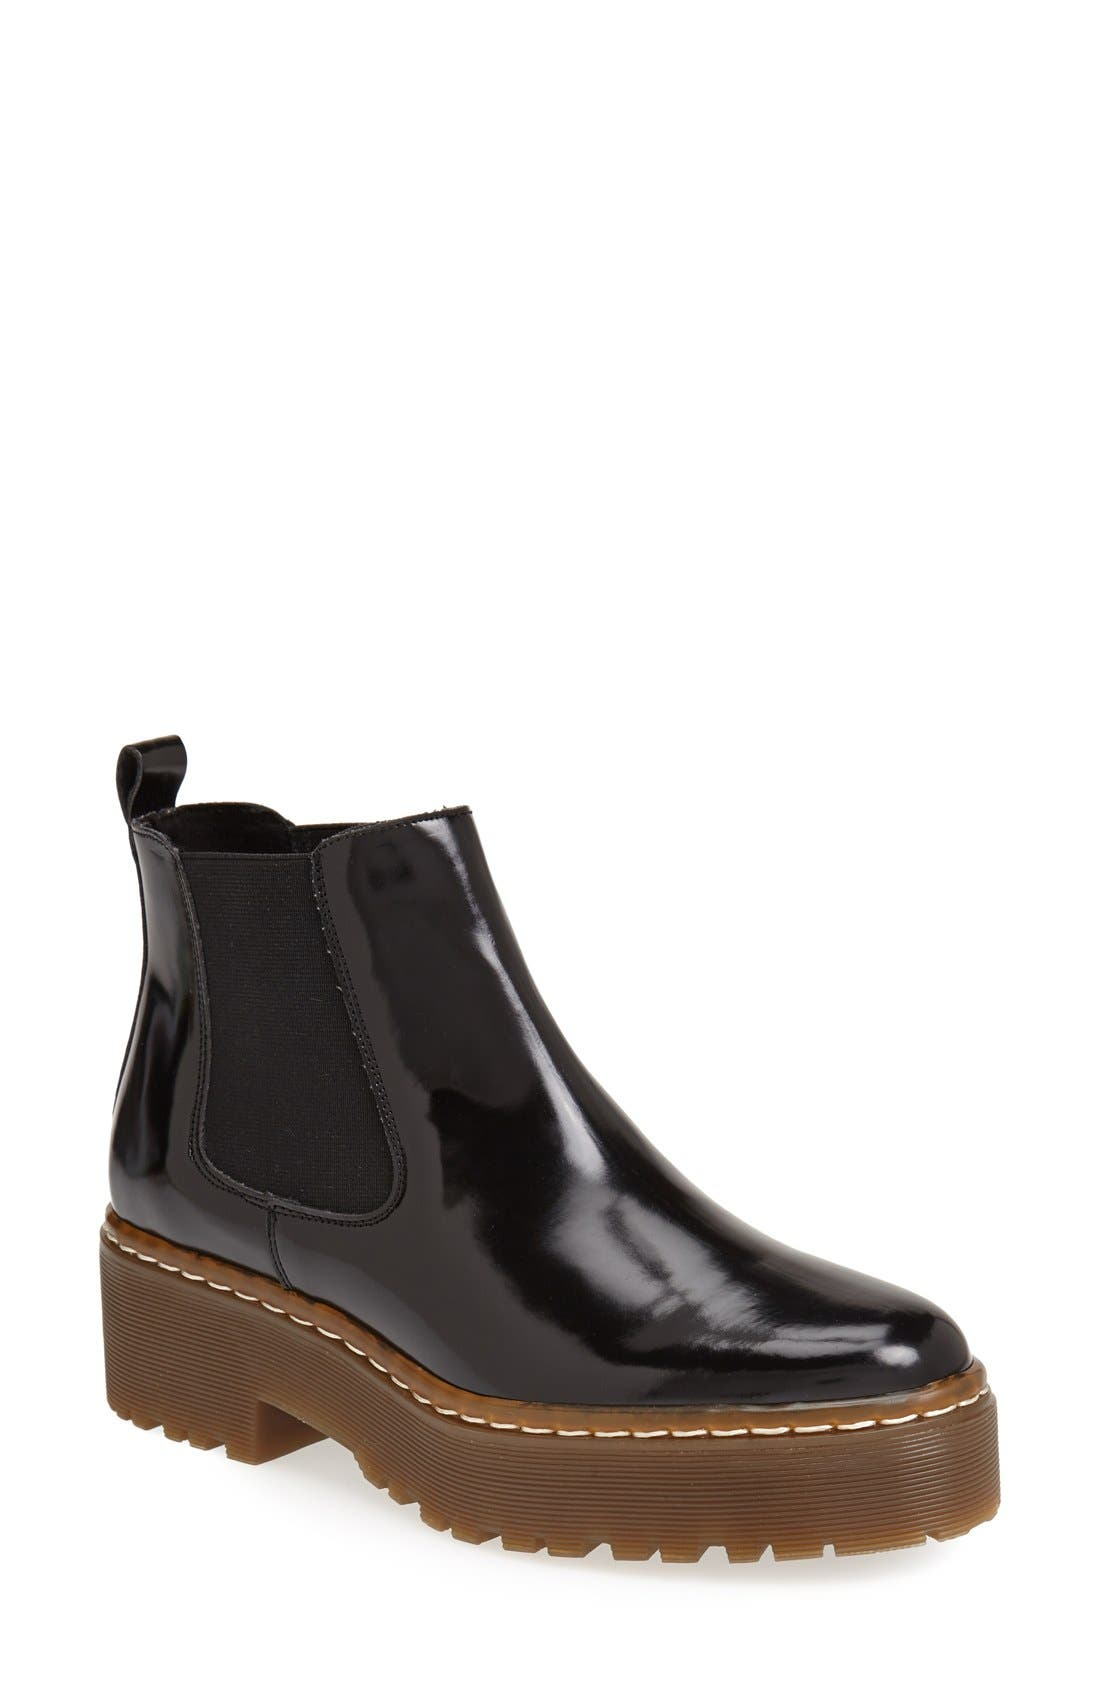 Alternate Image 1 Selected - Topshop 'Absolutely' Chelsea Boots (Women)